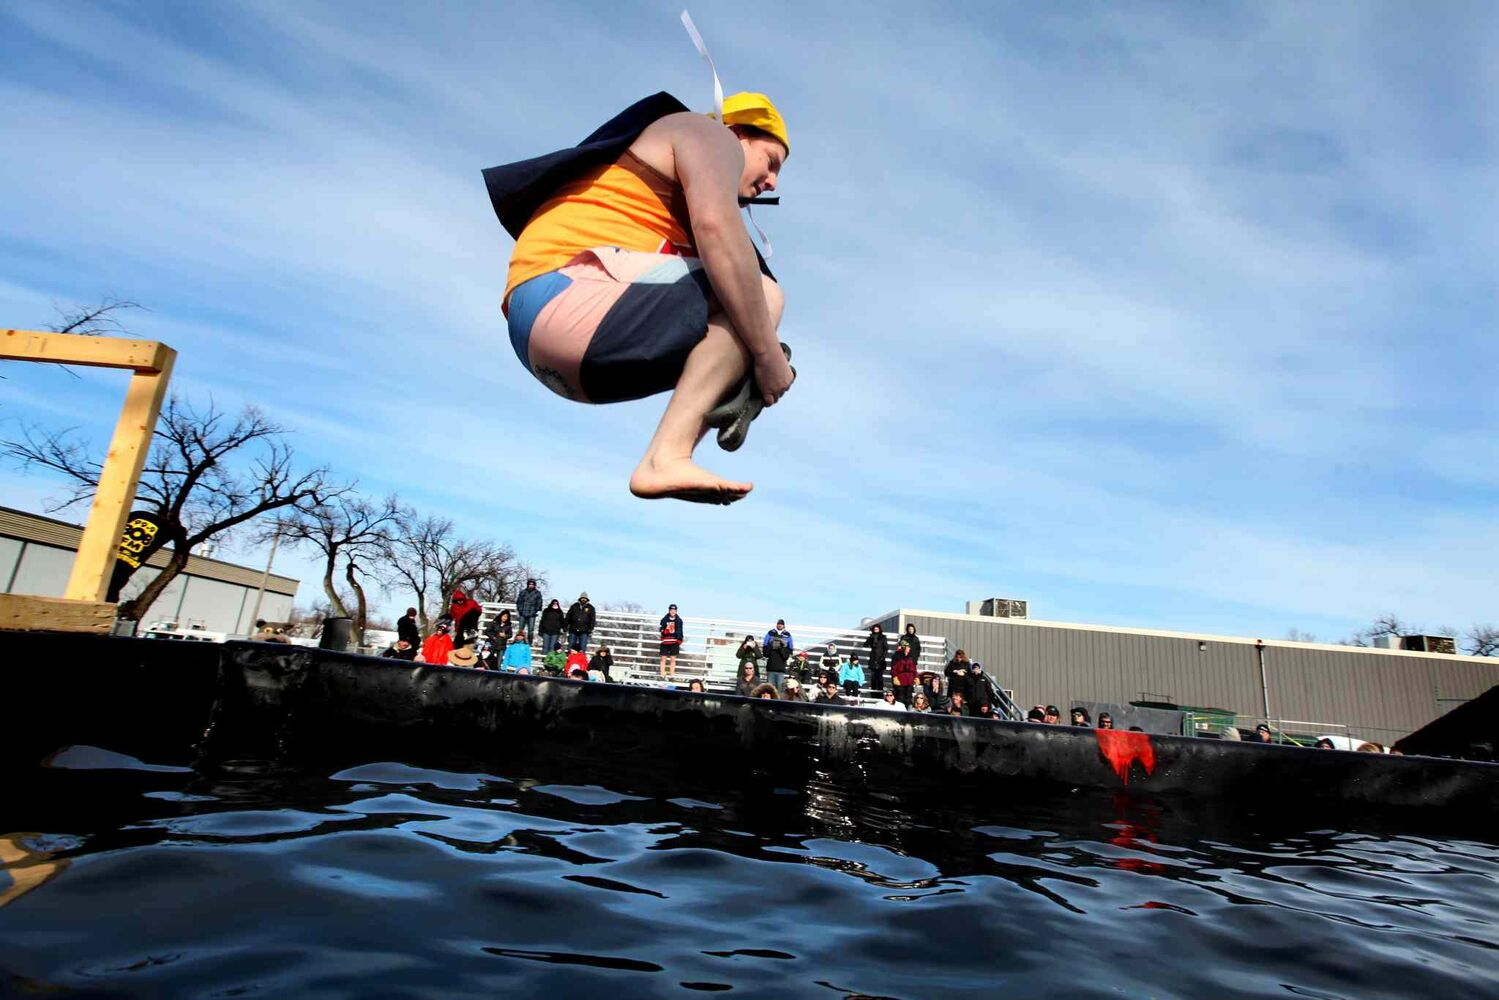 Darren Anderson does a cannonball jump into a BFI bin filled with water at the Indian Metis Friendship Centre Saturday afternoon as part of the Polar Plunge, a fundraiser for Special Olympics Manitoba.  (Ruth Bonneville / Winnipeg Free Press)